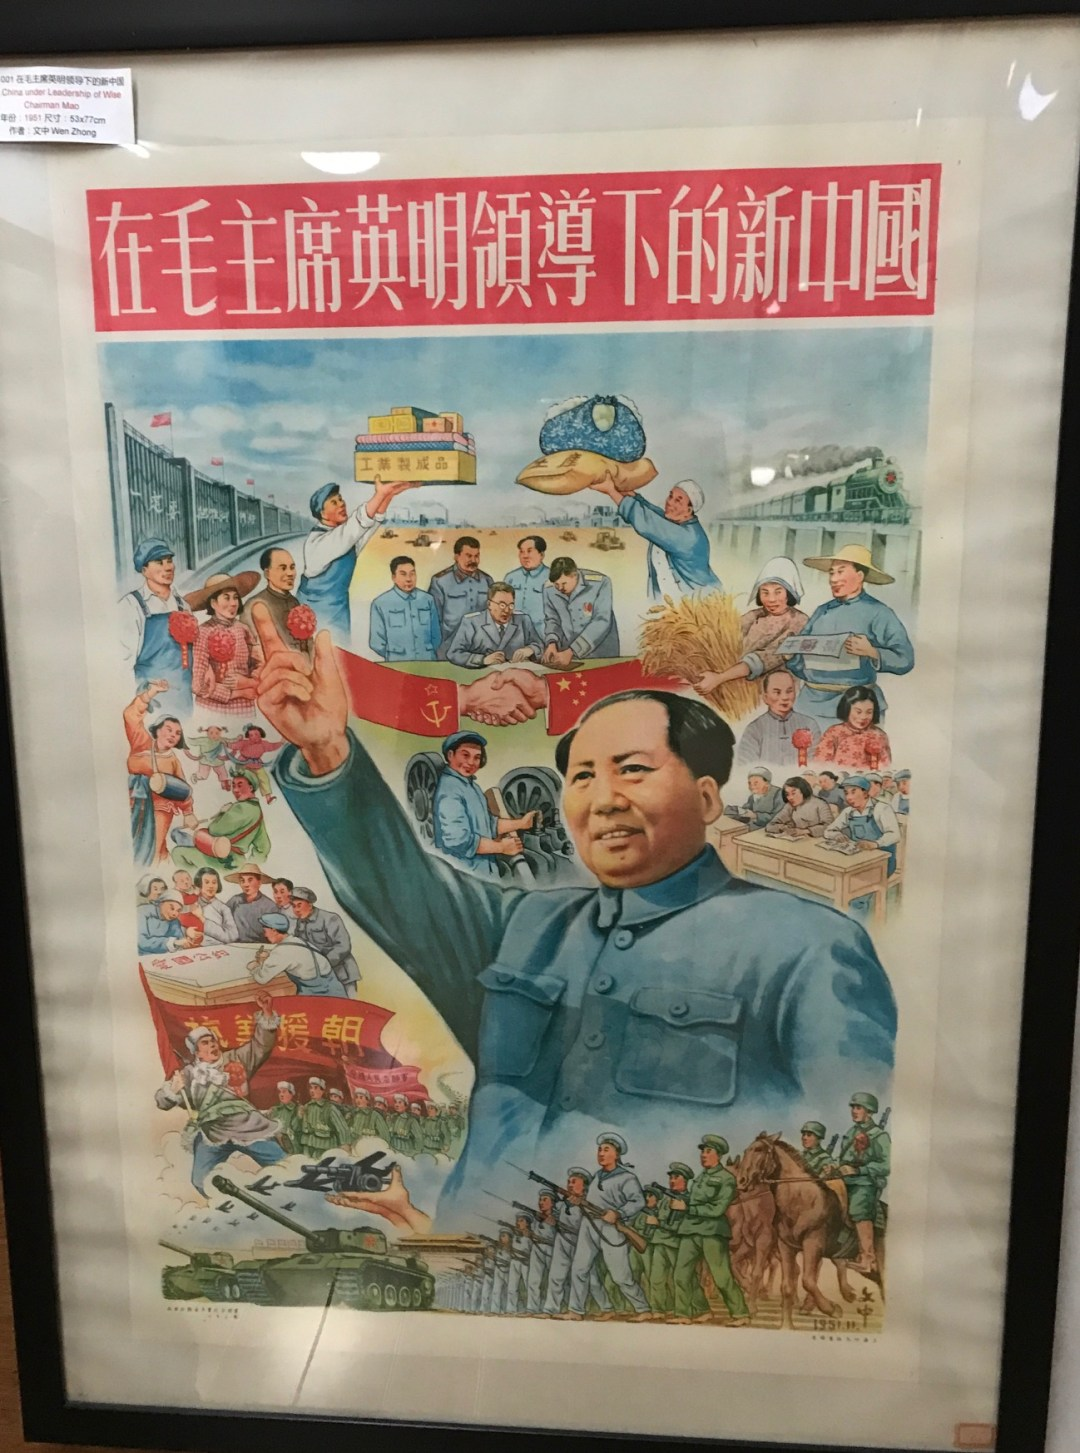 One of the many preserved posters from the Propaganda Art Centre.